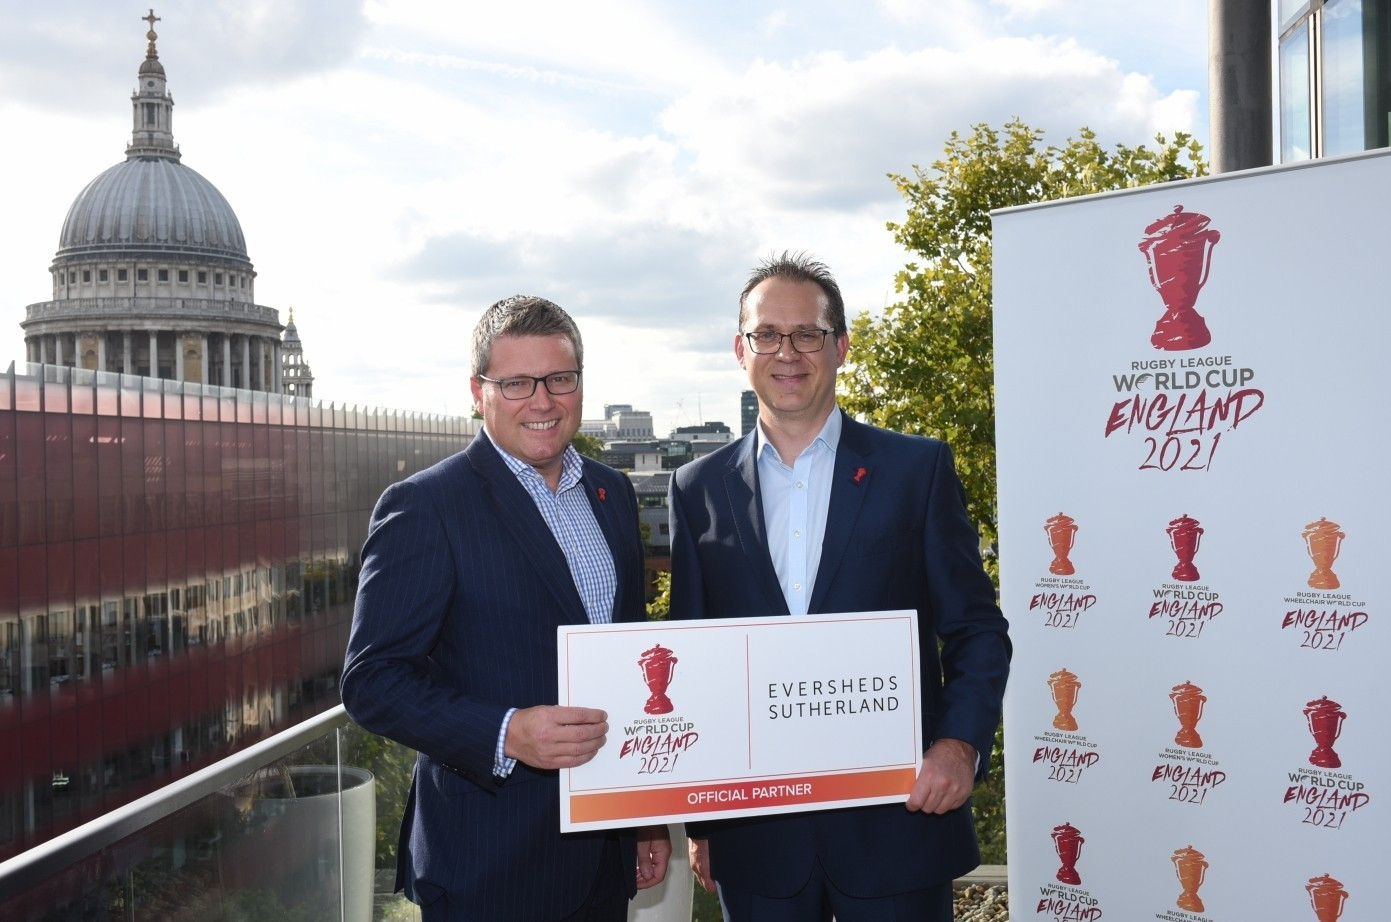 Eversheds Sutherland have signed up as the first official partner of the 2021 Rugby League World Cup in England ©RFL